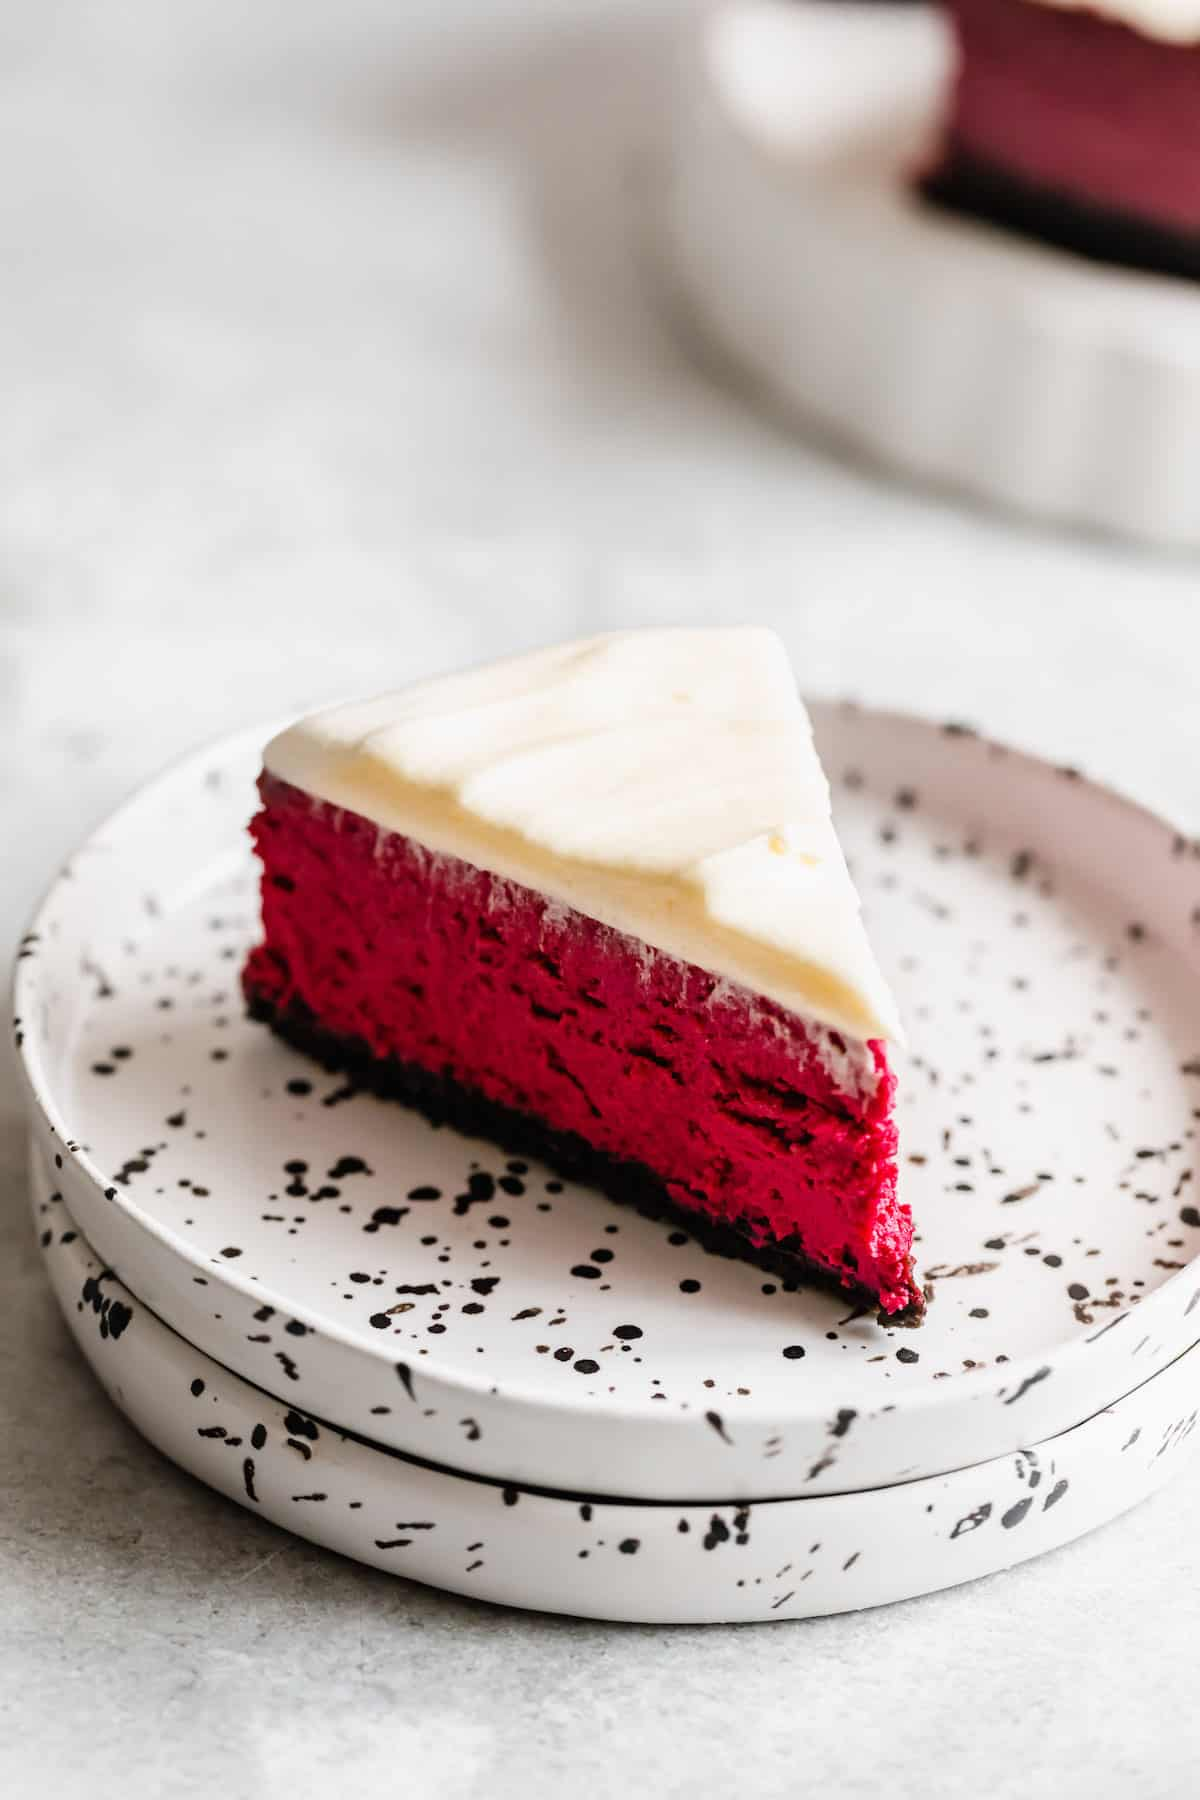 A Slice of Homemade Cheesecake with Oreo Crust and Cream Cheese Frosting on a Dessert Plate